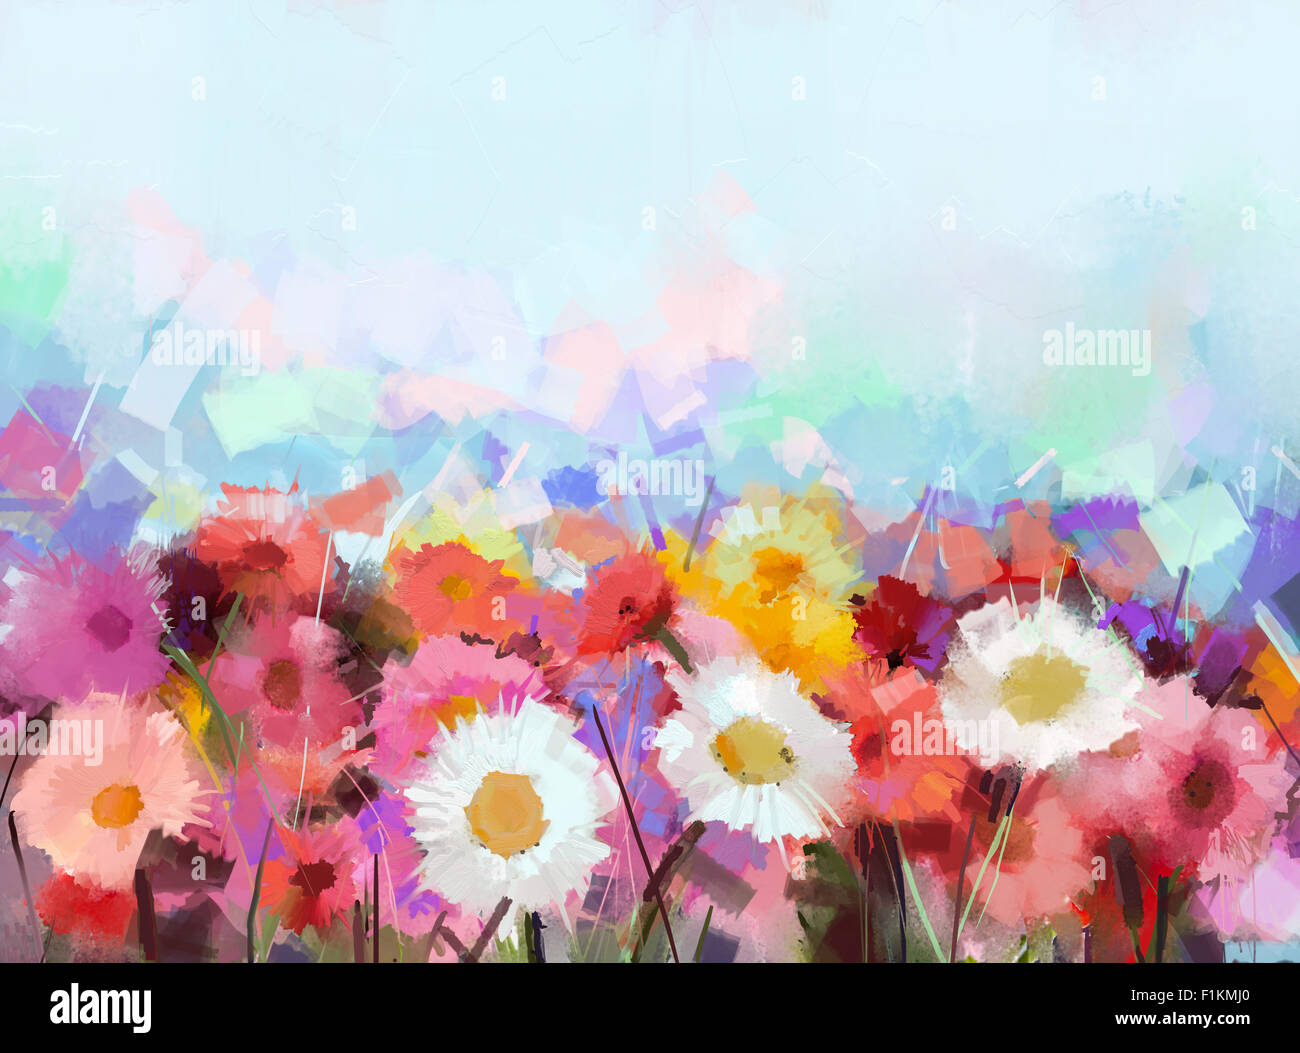 Oil painting flowers daisy gerbera flower in fields for How to oil paint flowers